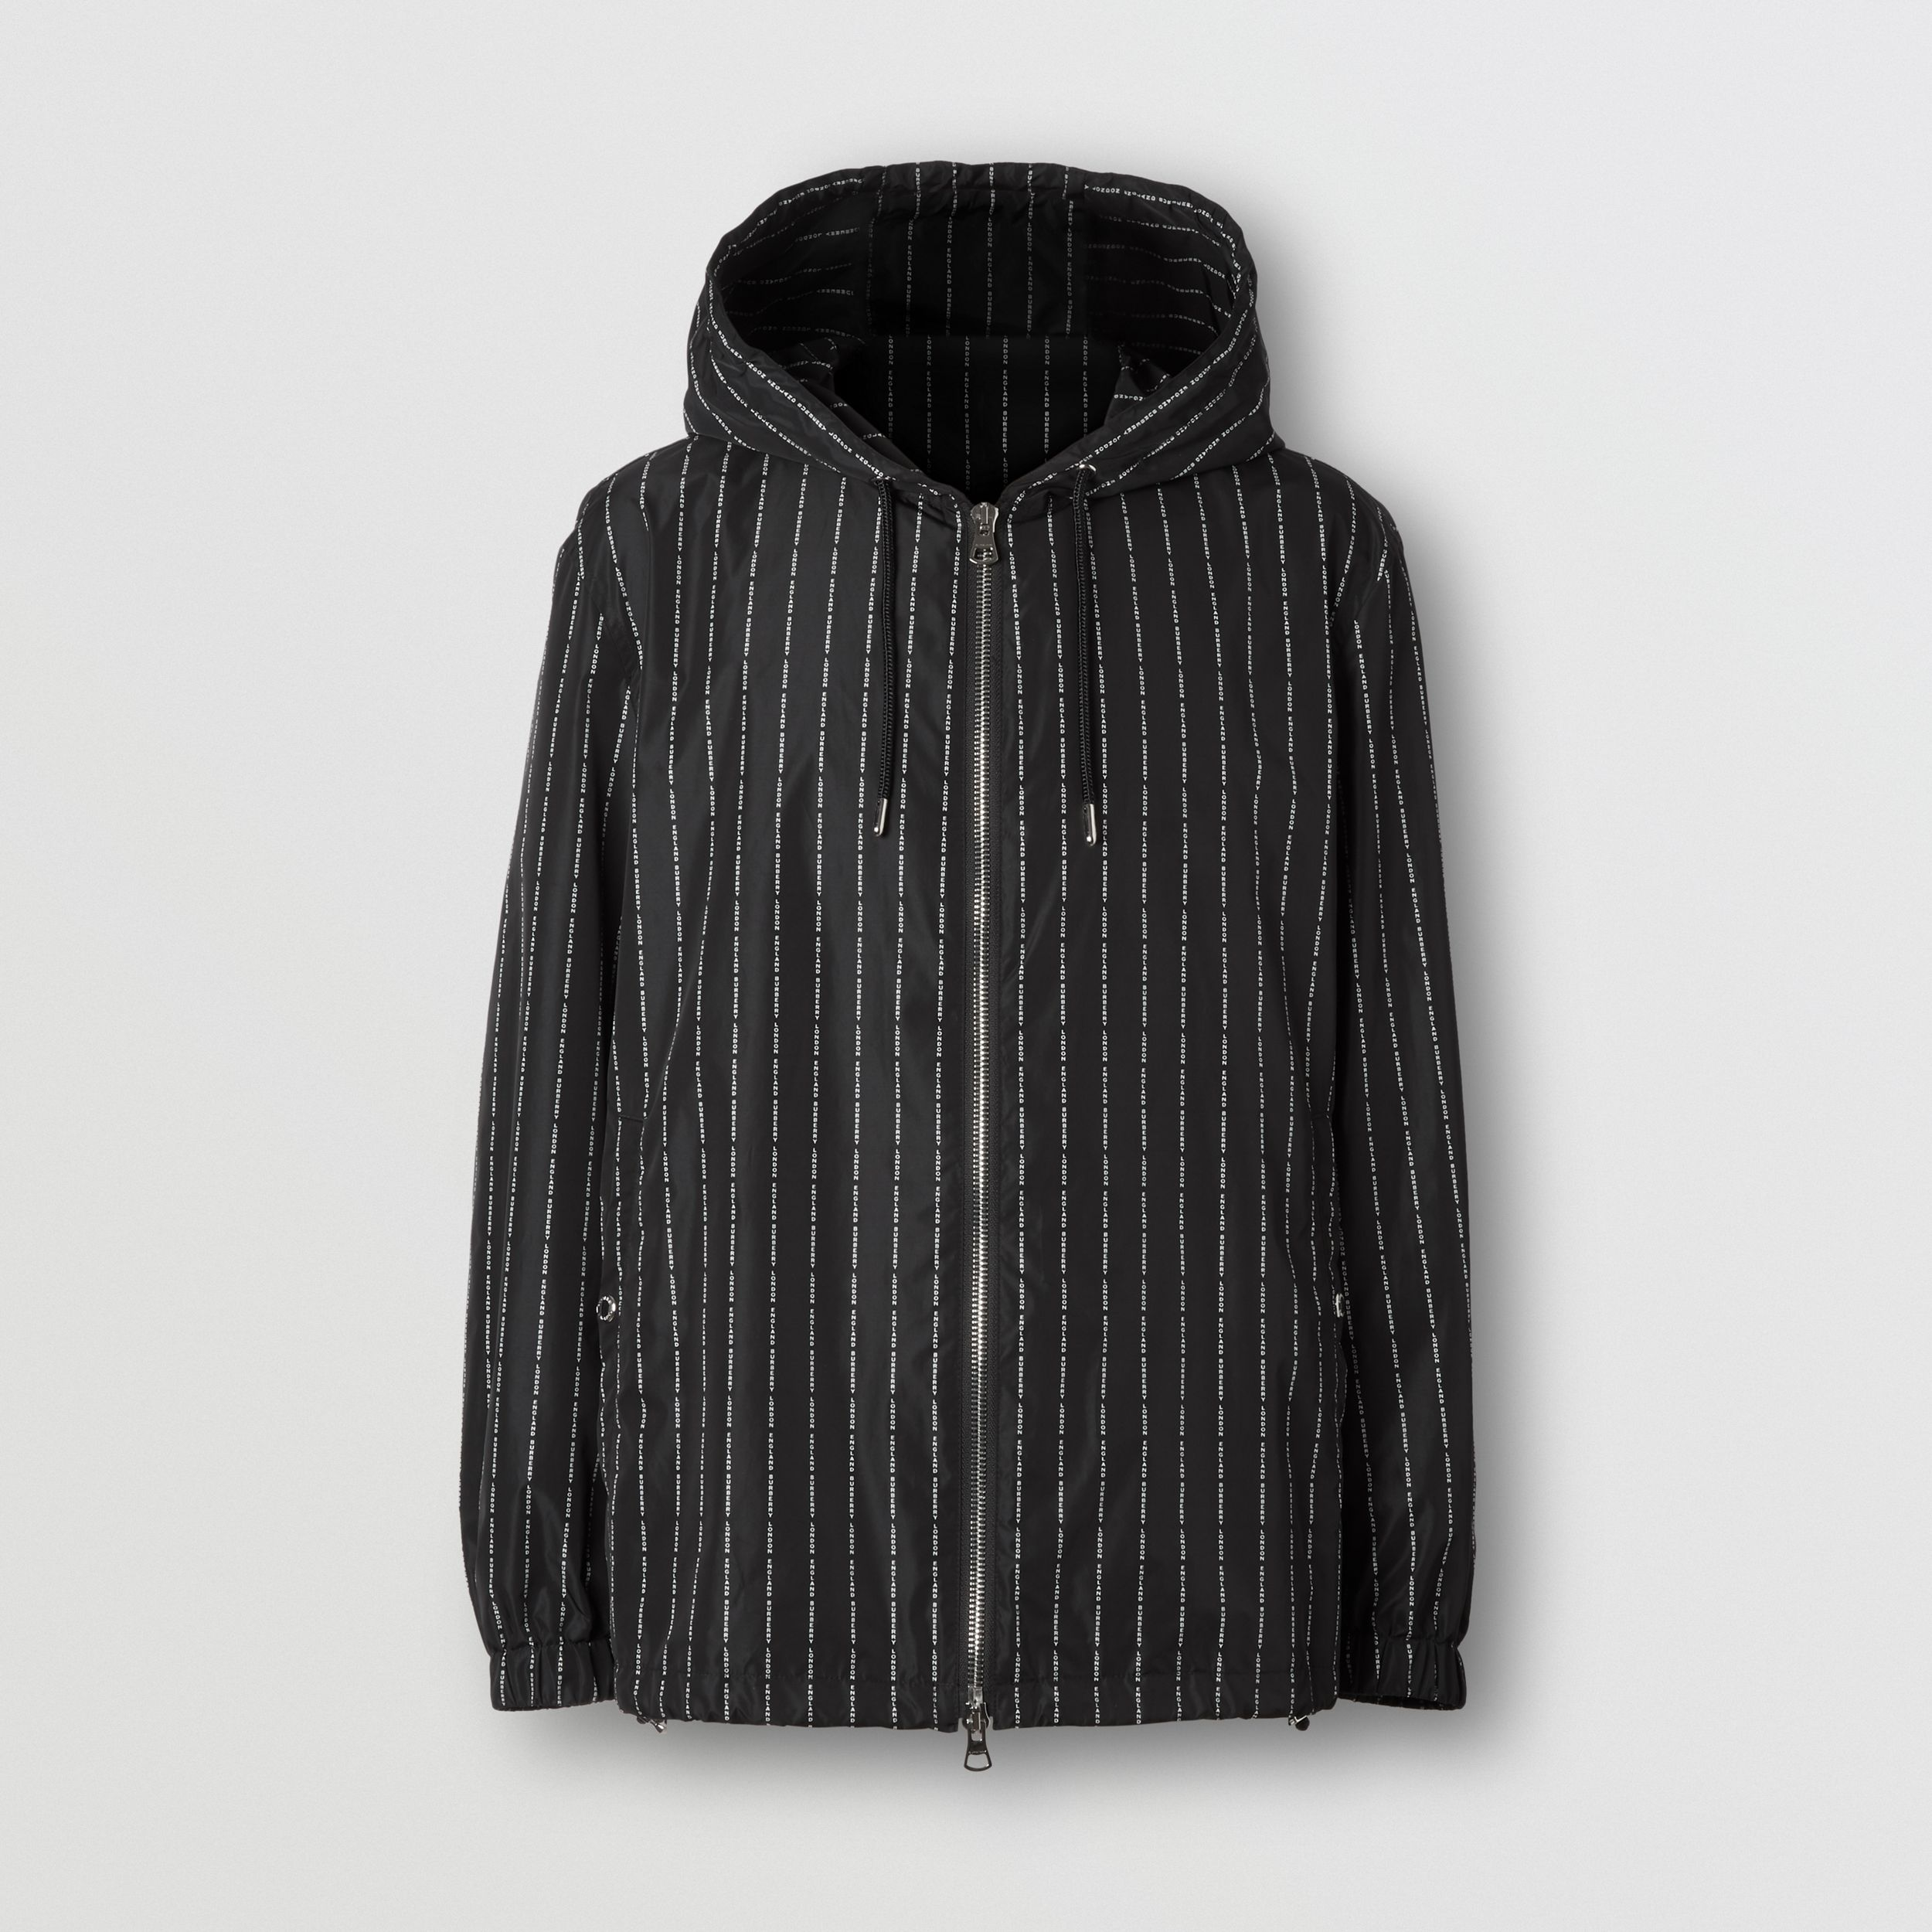 Logo Pinstripe Nylon Hooded Jacket in Black - Men | Burberry Canada - 4